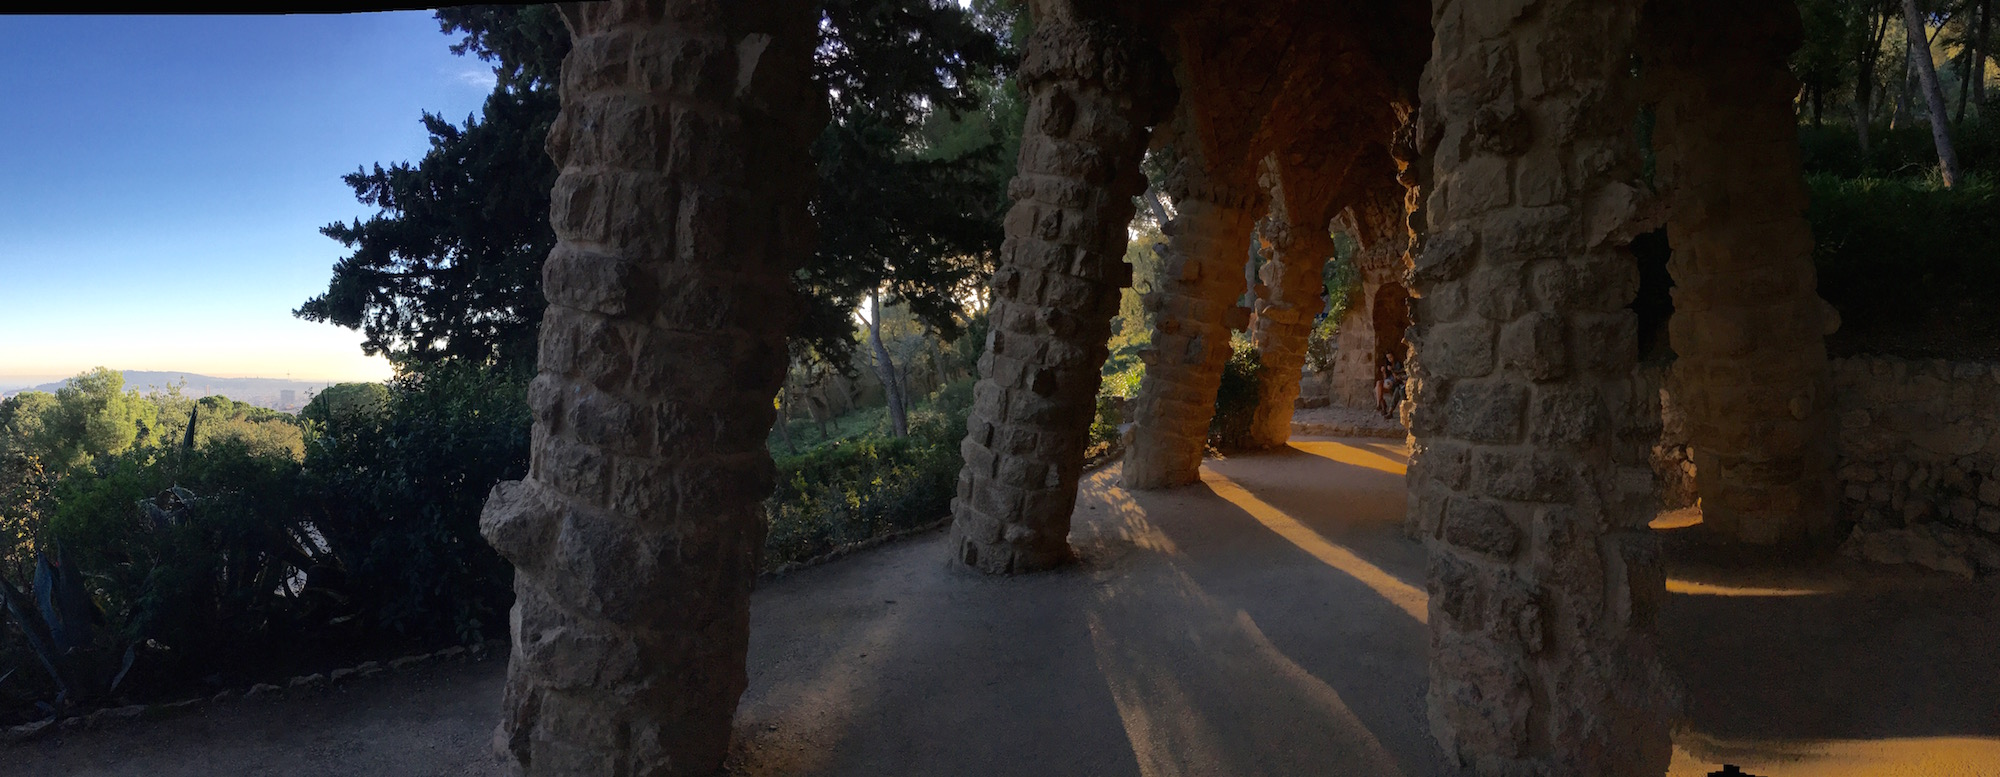 Guell_Viaduct